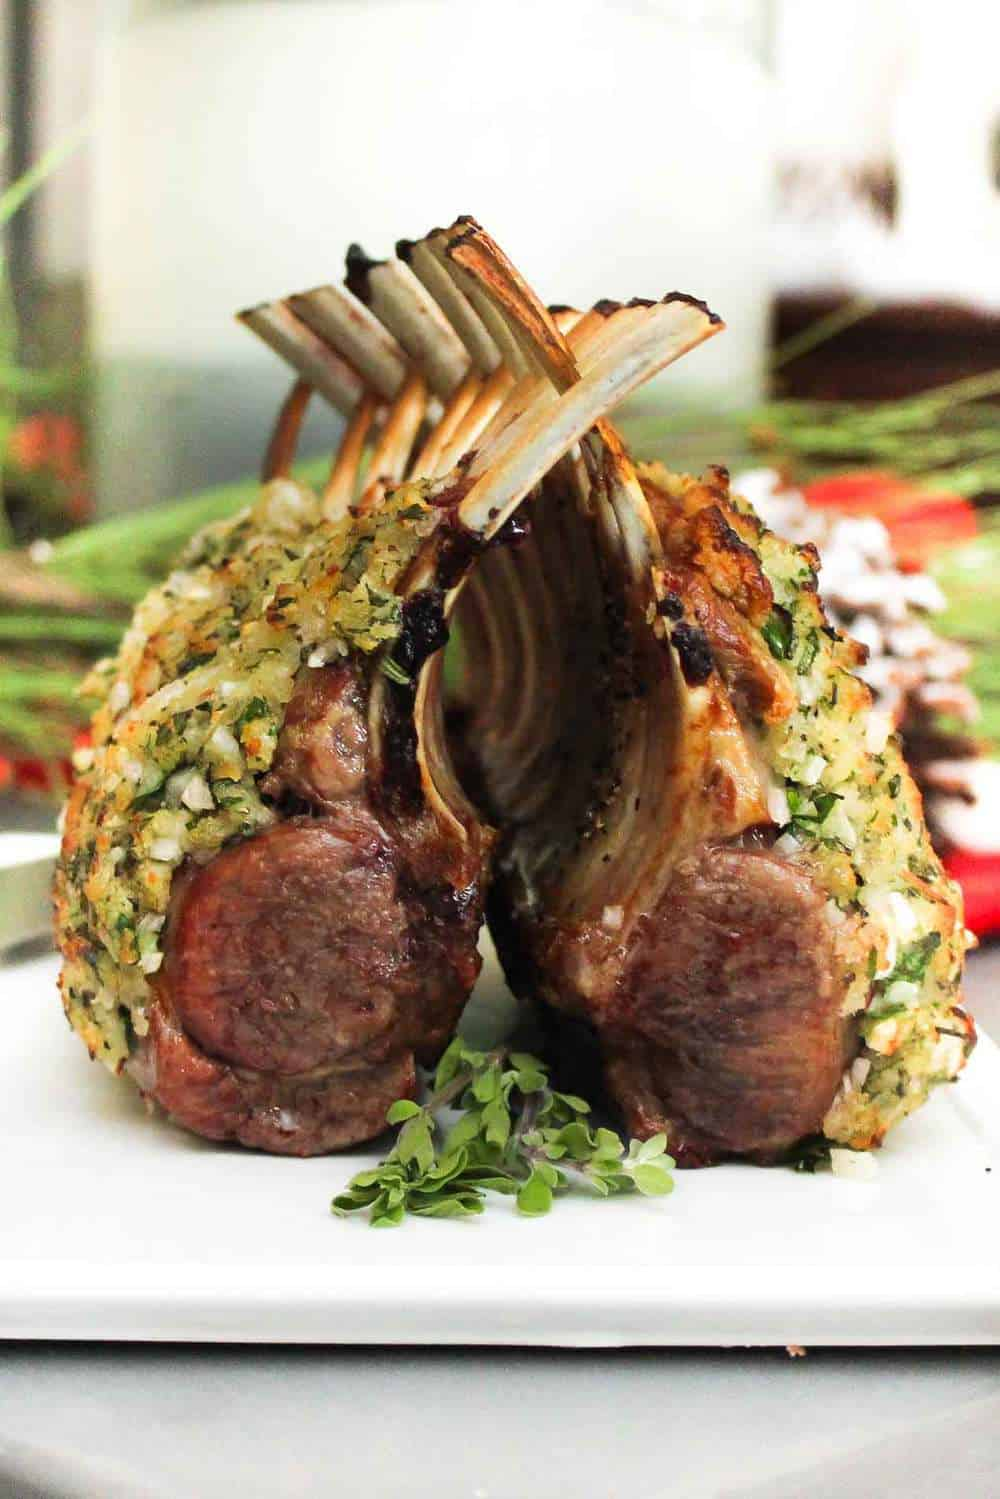 Roast rack of lamb recipe